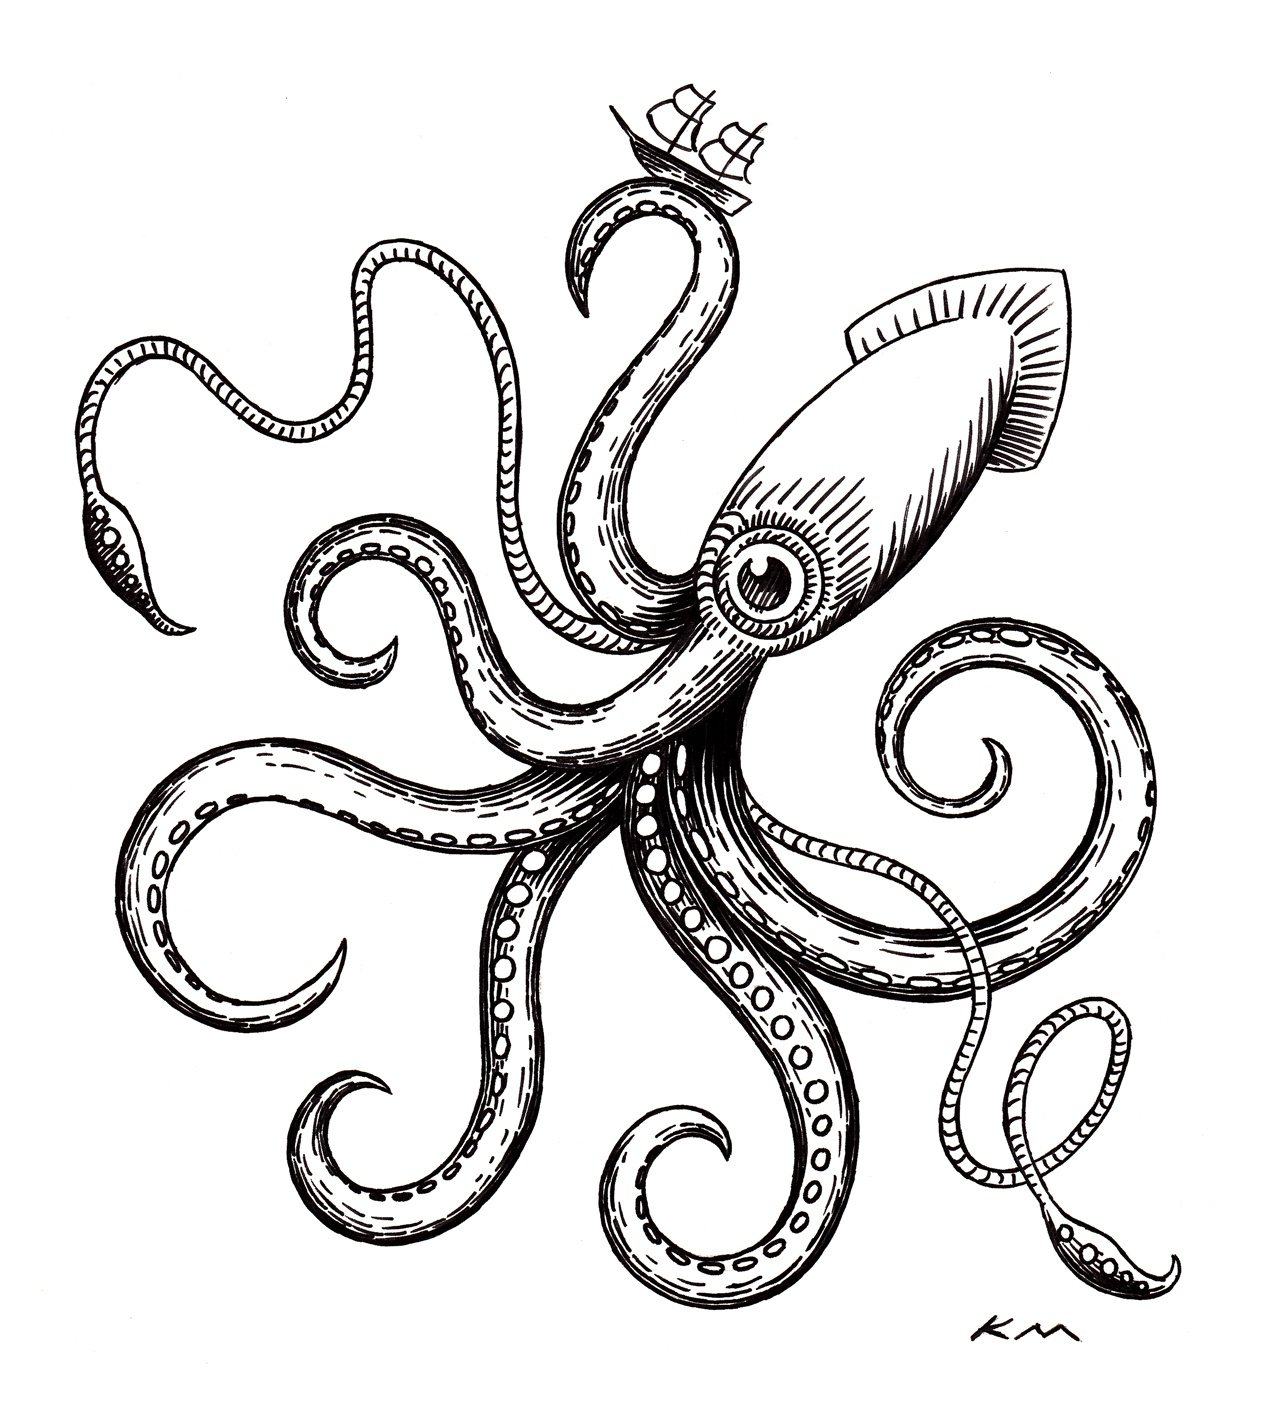 1276x1427 Giant Squid By Ken Molnar (C) 2013 Ink On Paper. For My Friends